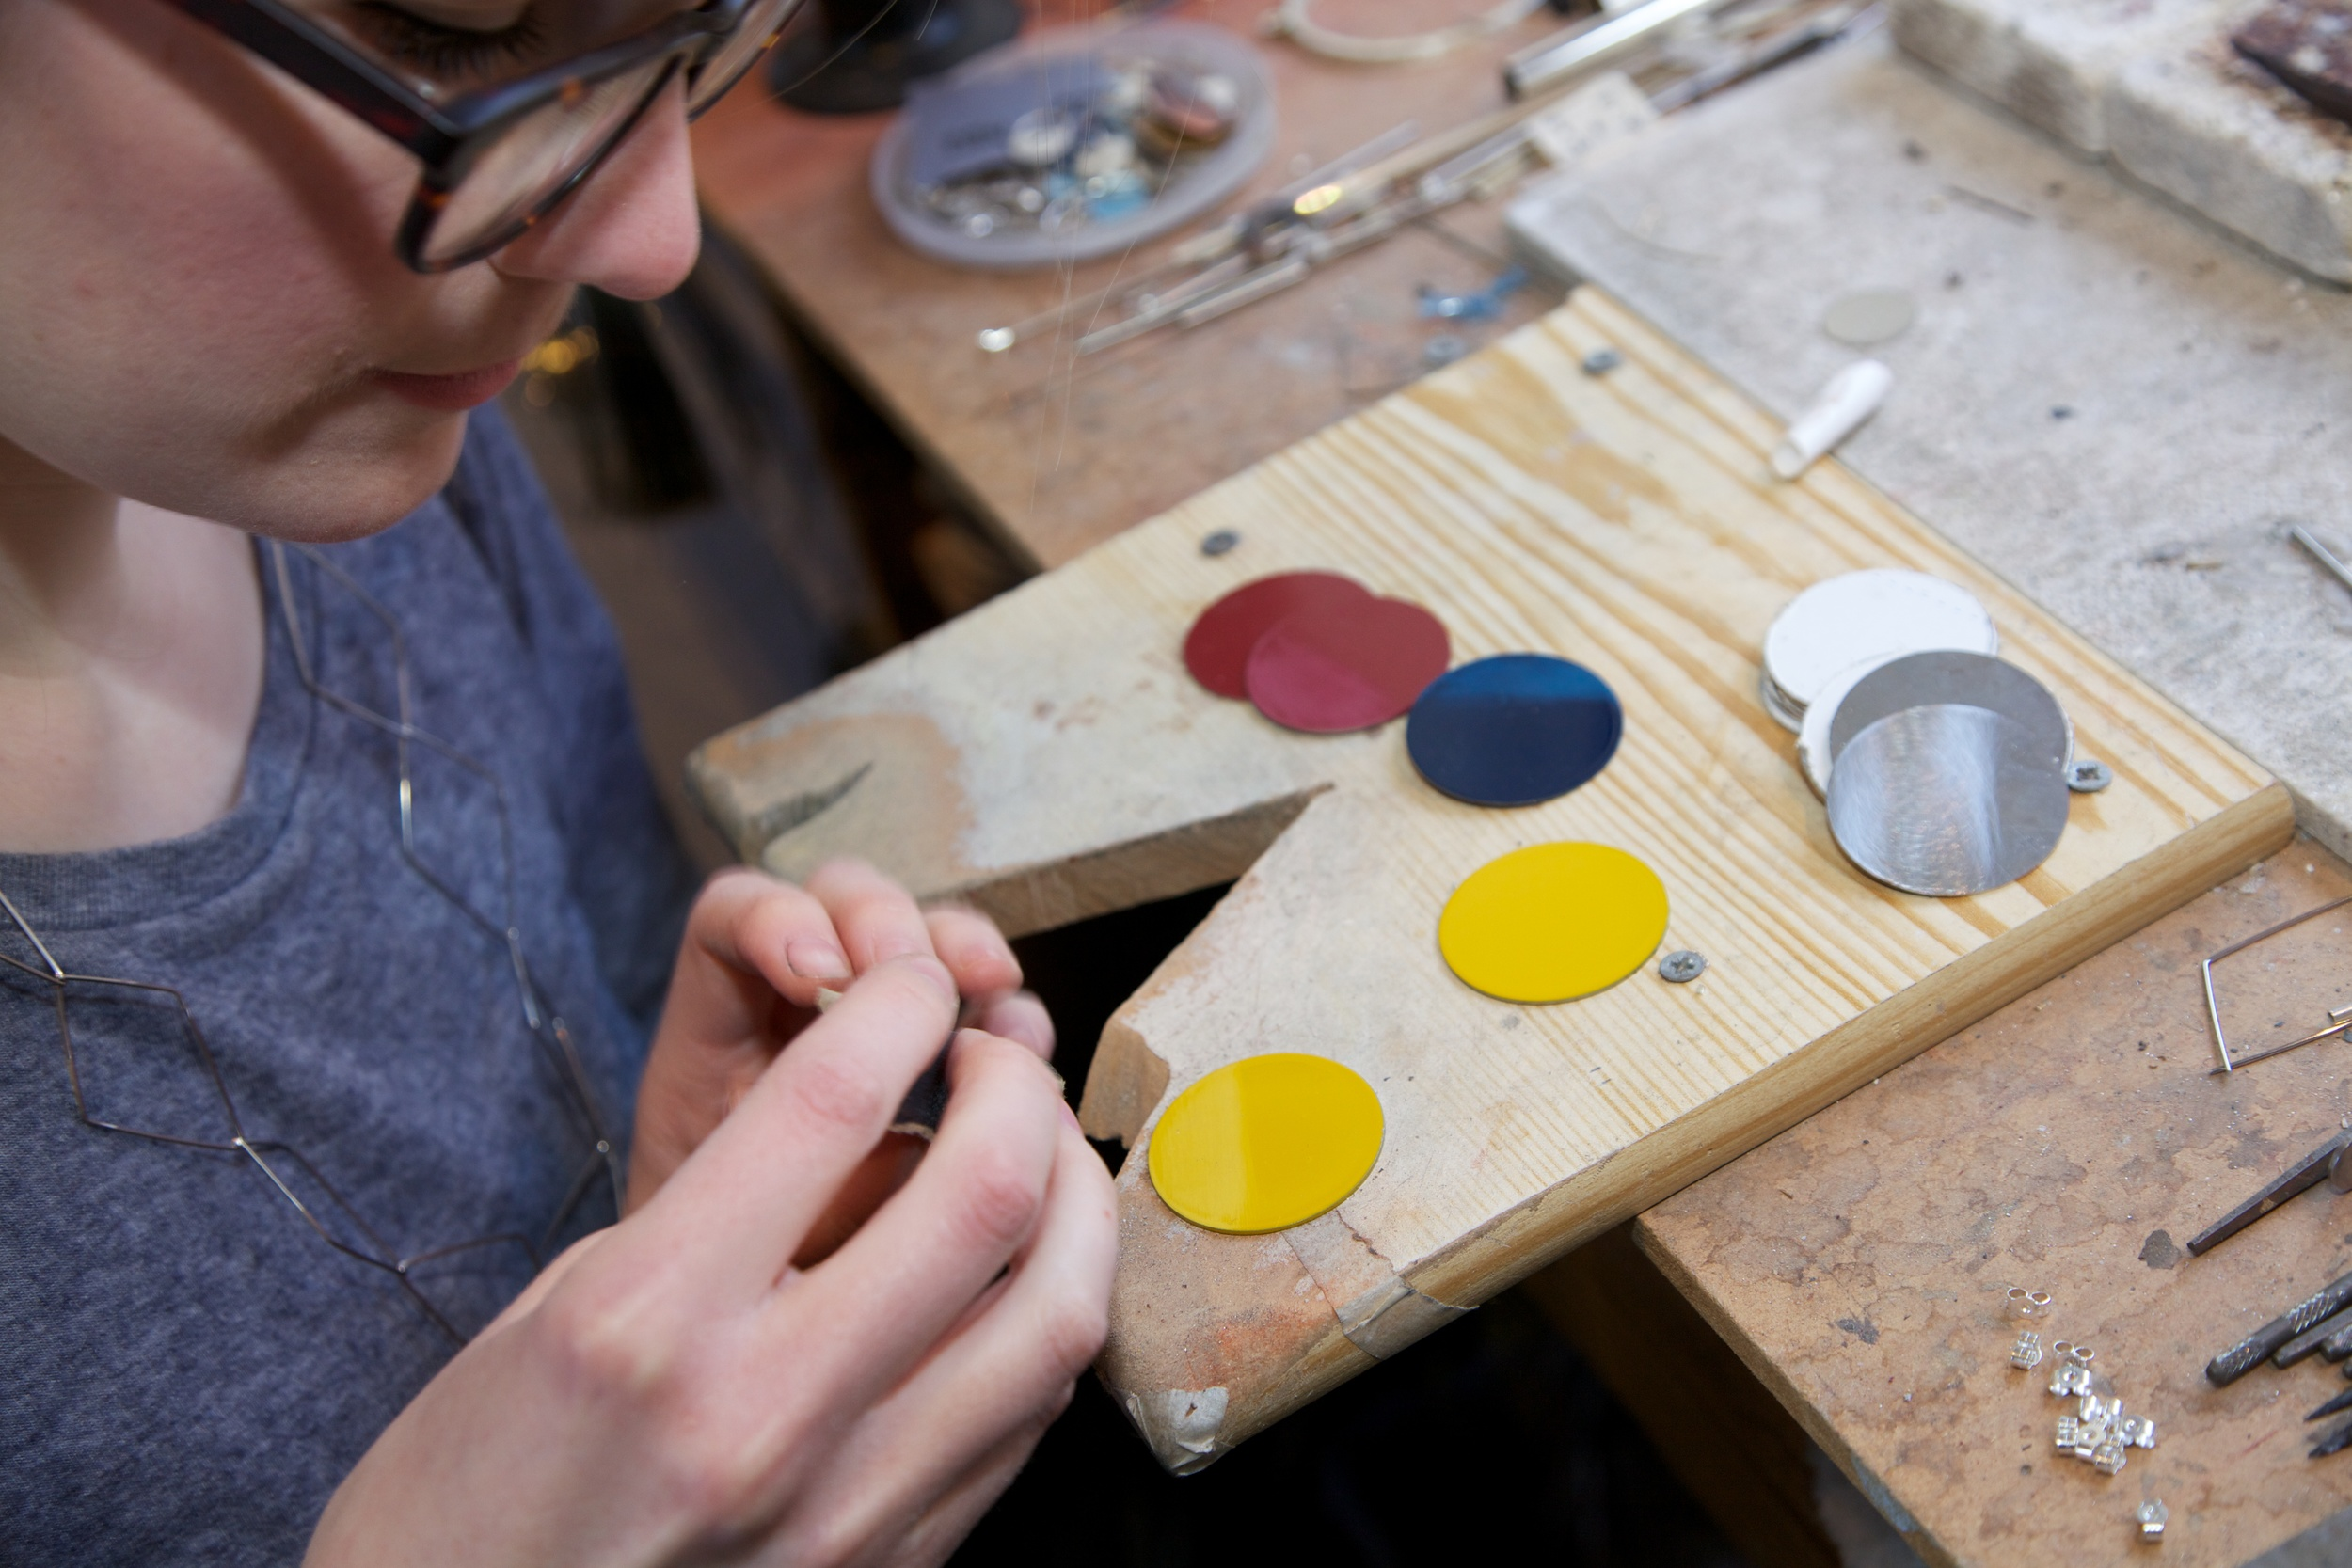 Heather working on the brooches